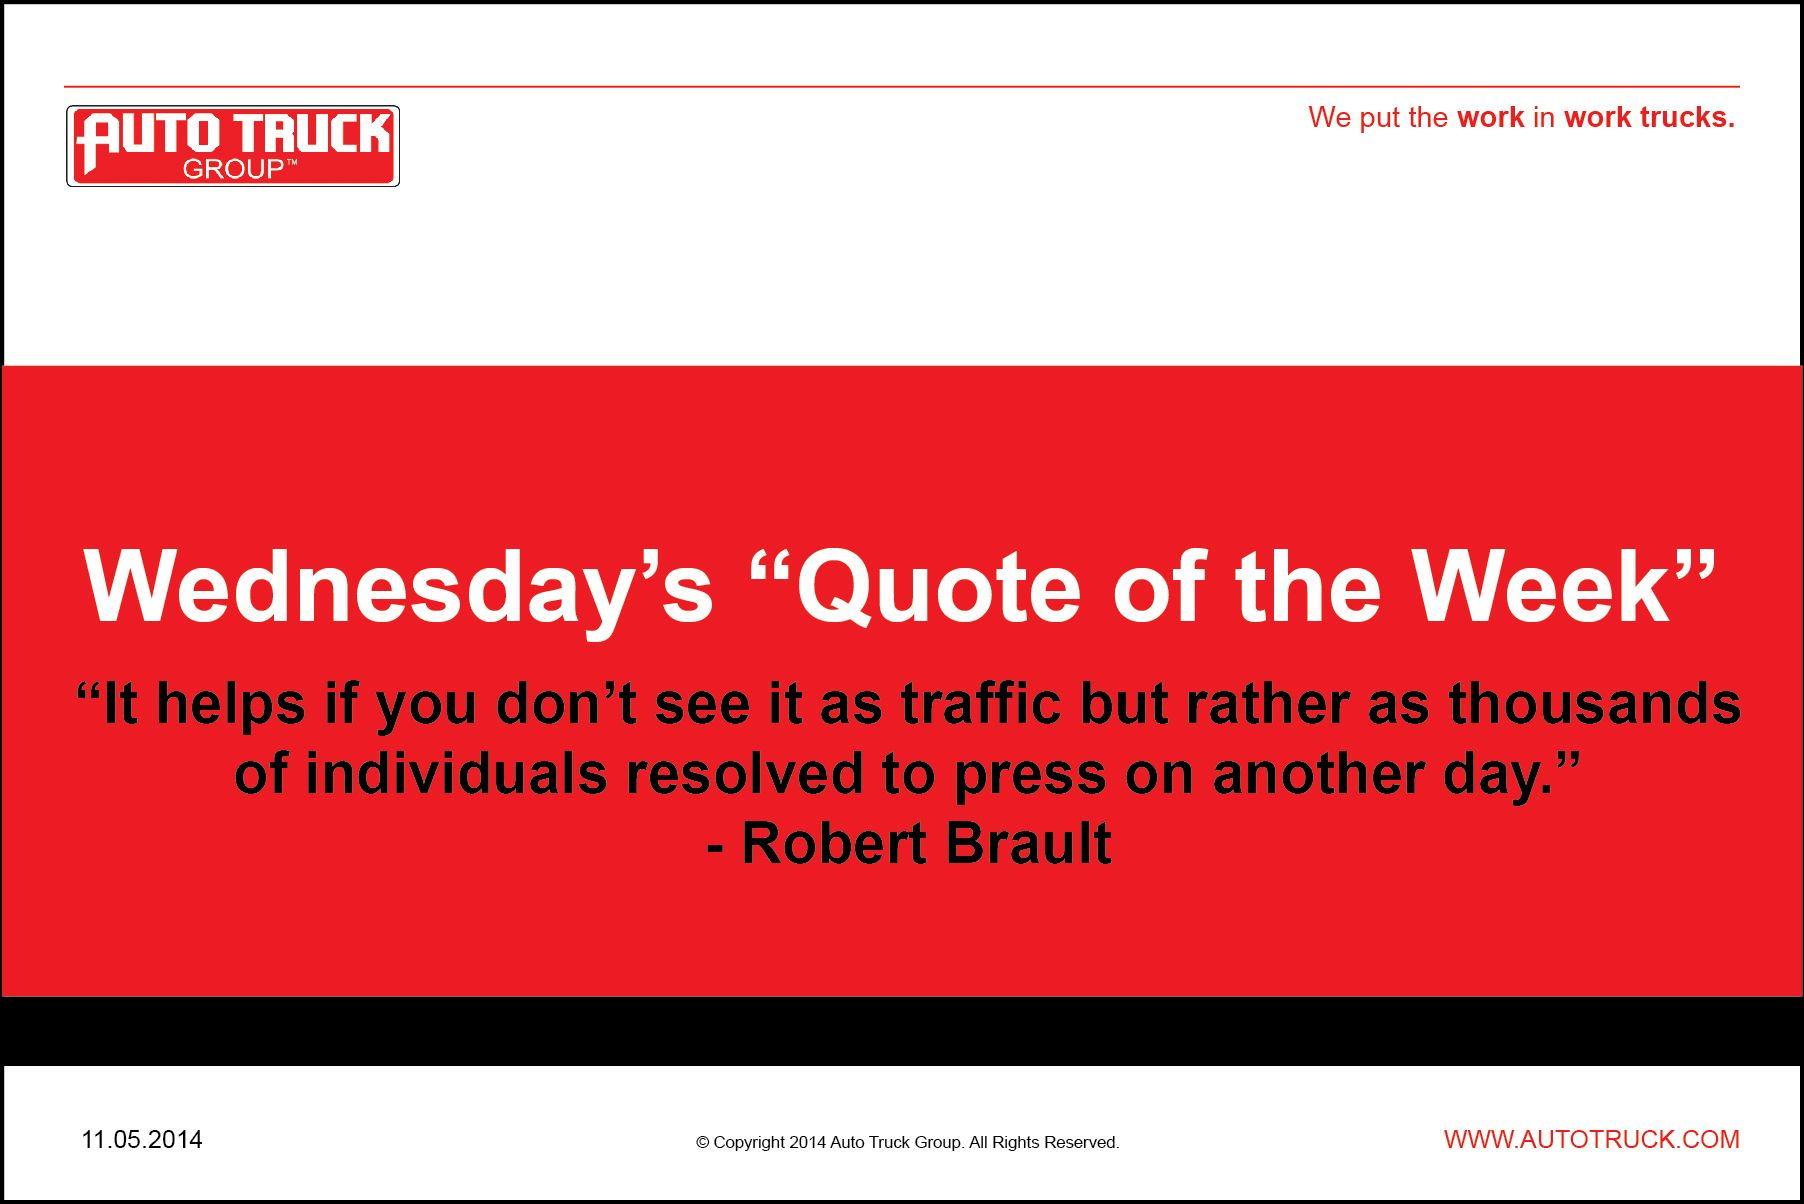 """Quote of the Week."" Half way through the week. Hope this gives you something fun to think about.  www.autotruck.com"